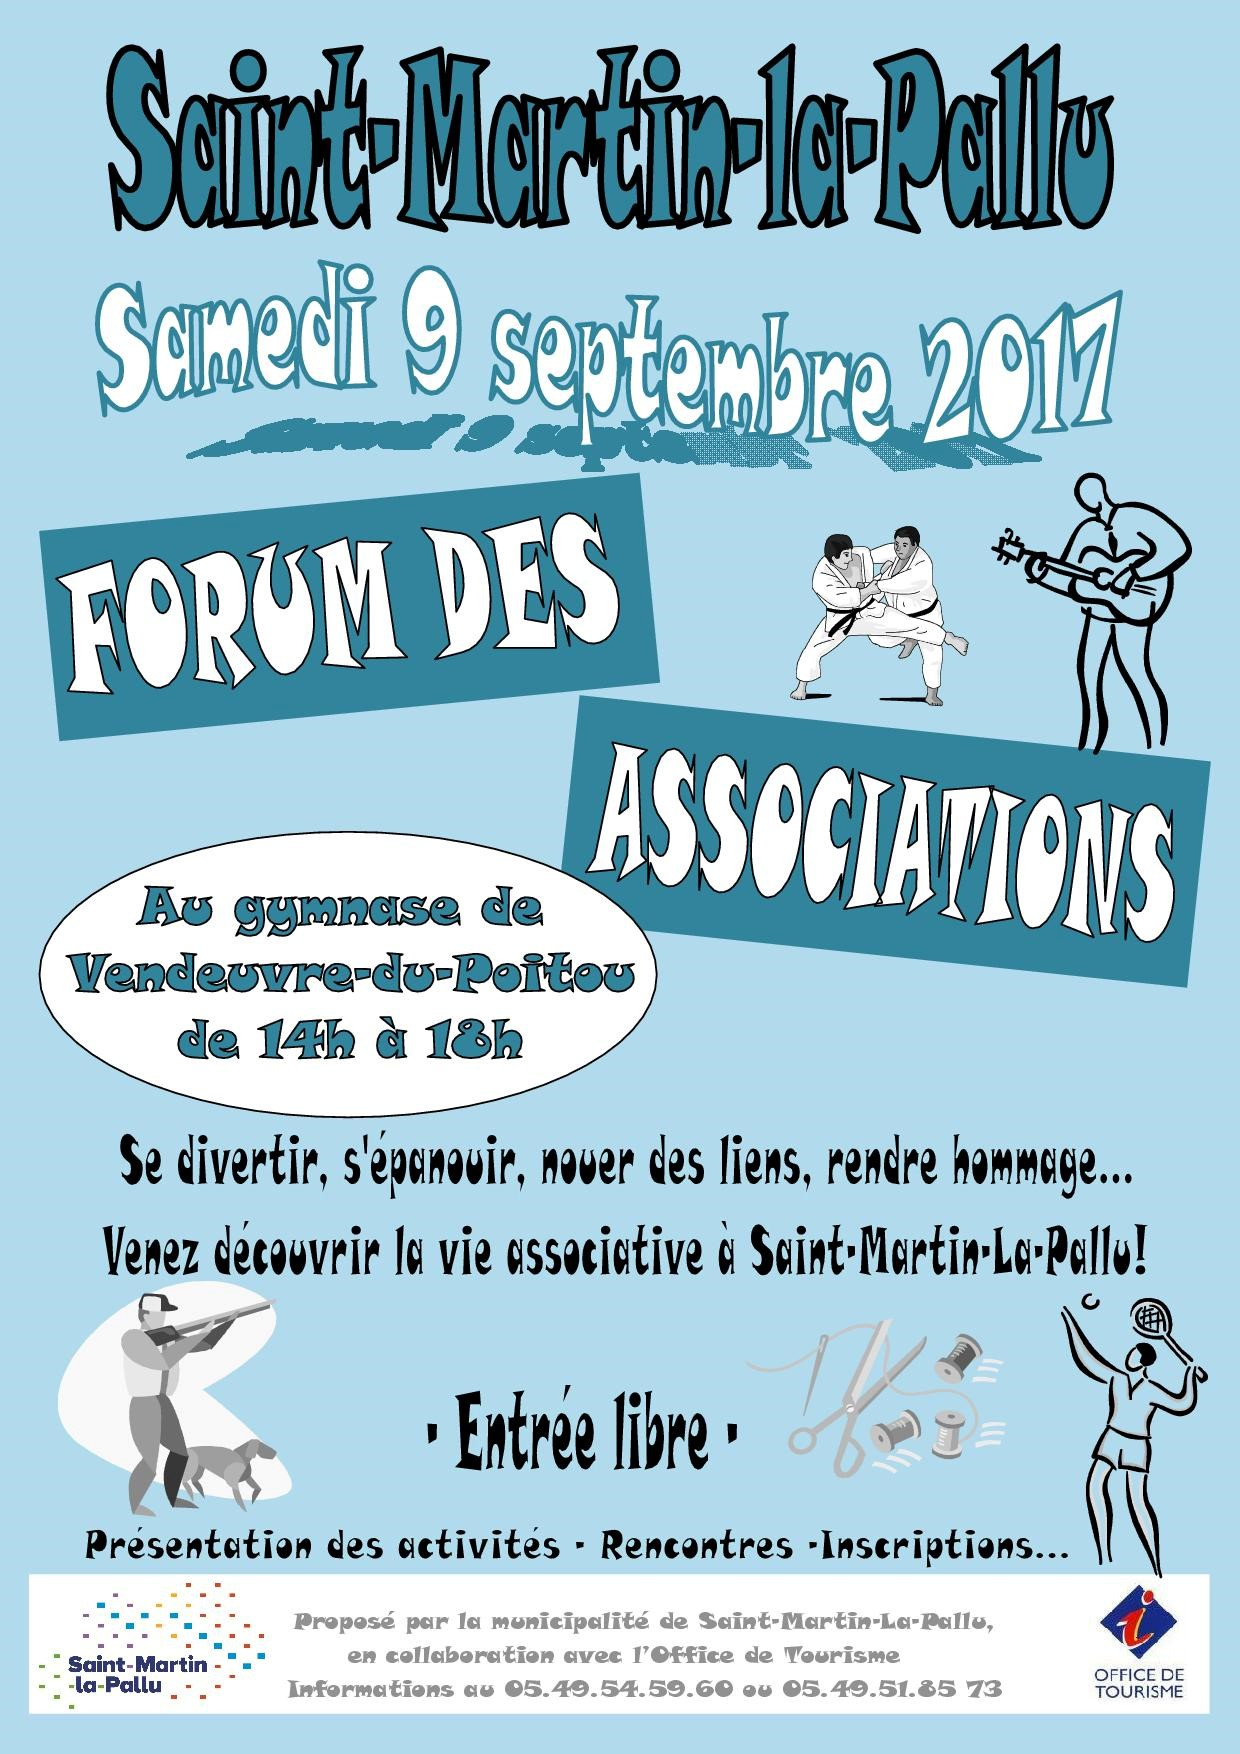 Affiche forum associations St Martin la Pallu 9 septembre 2017